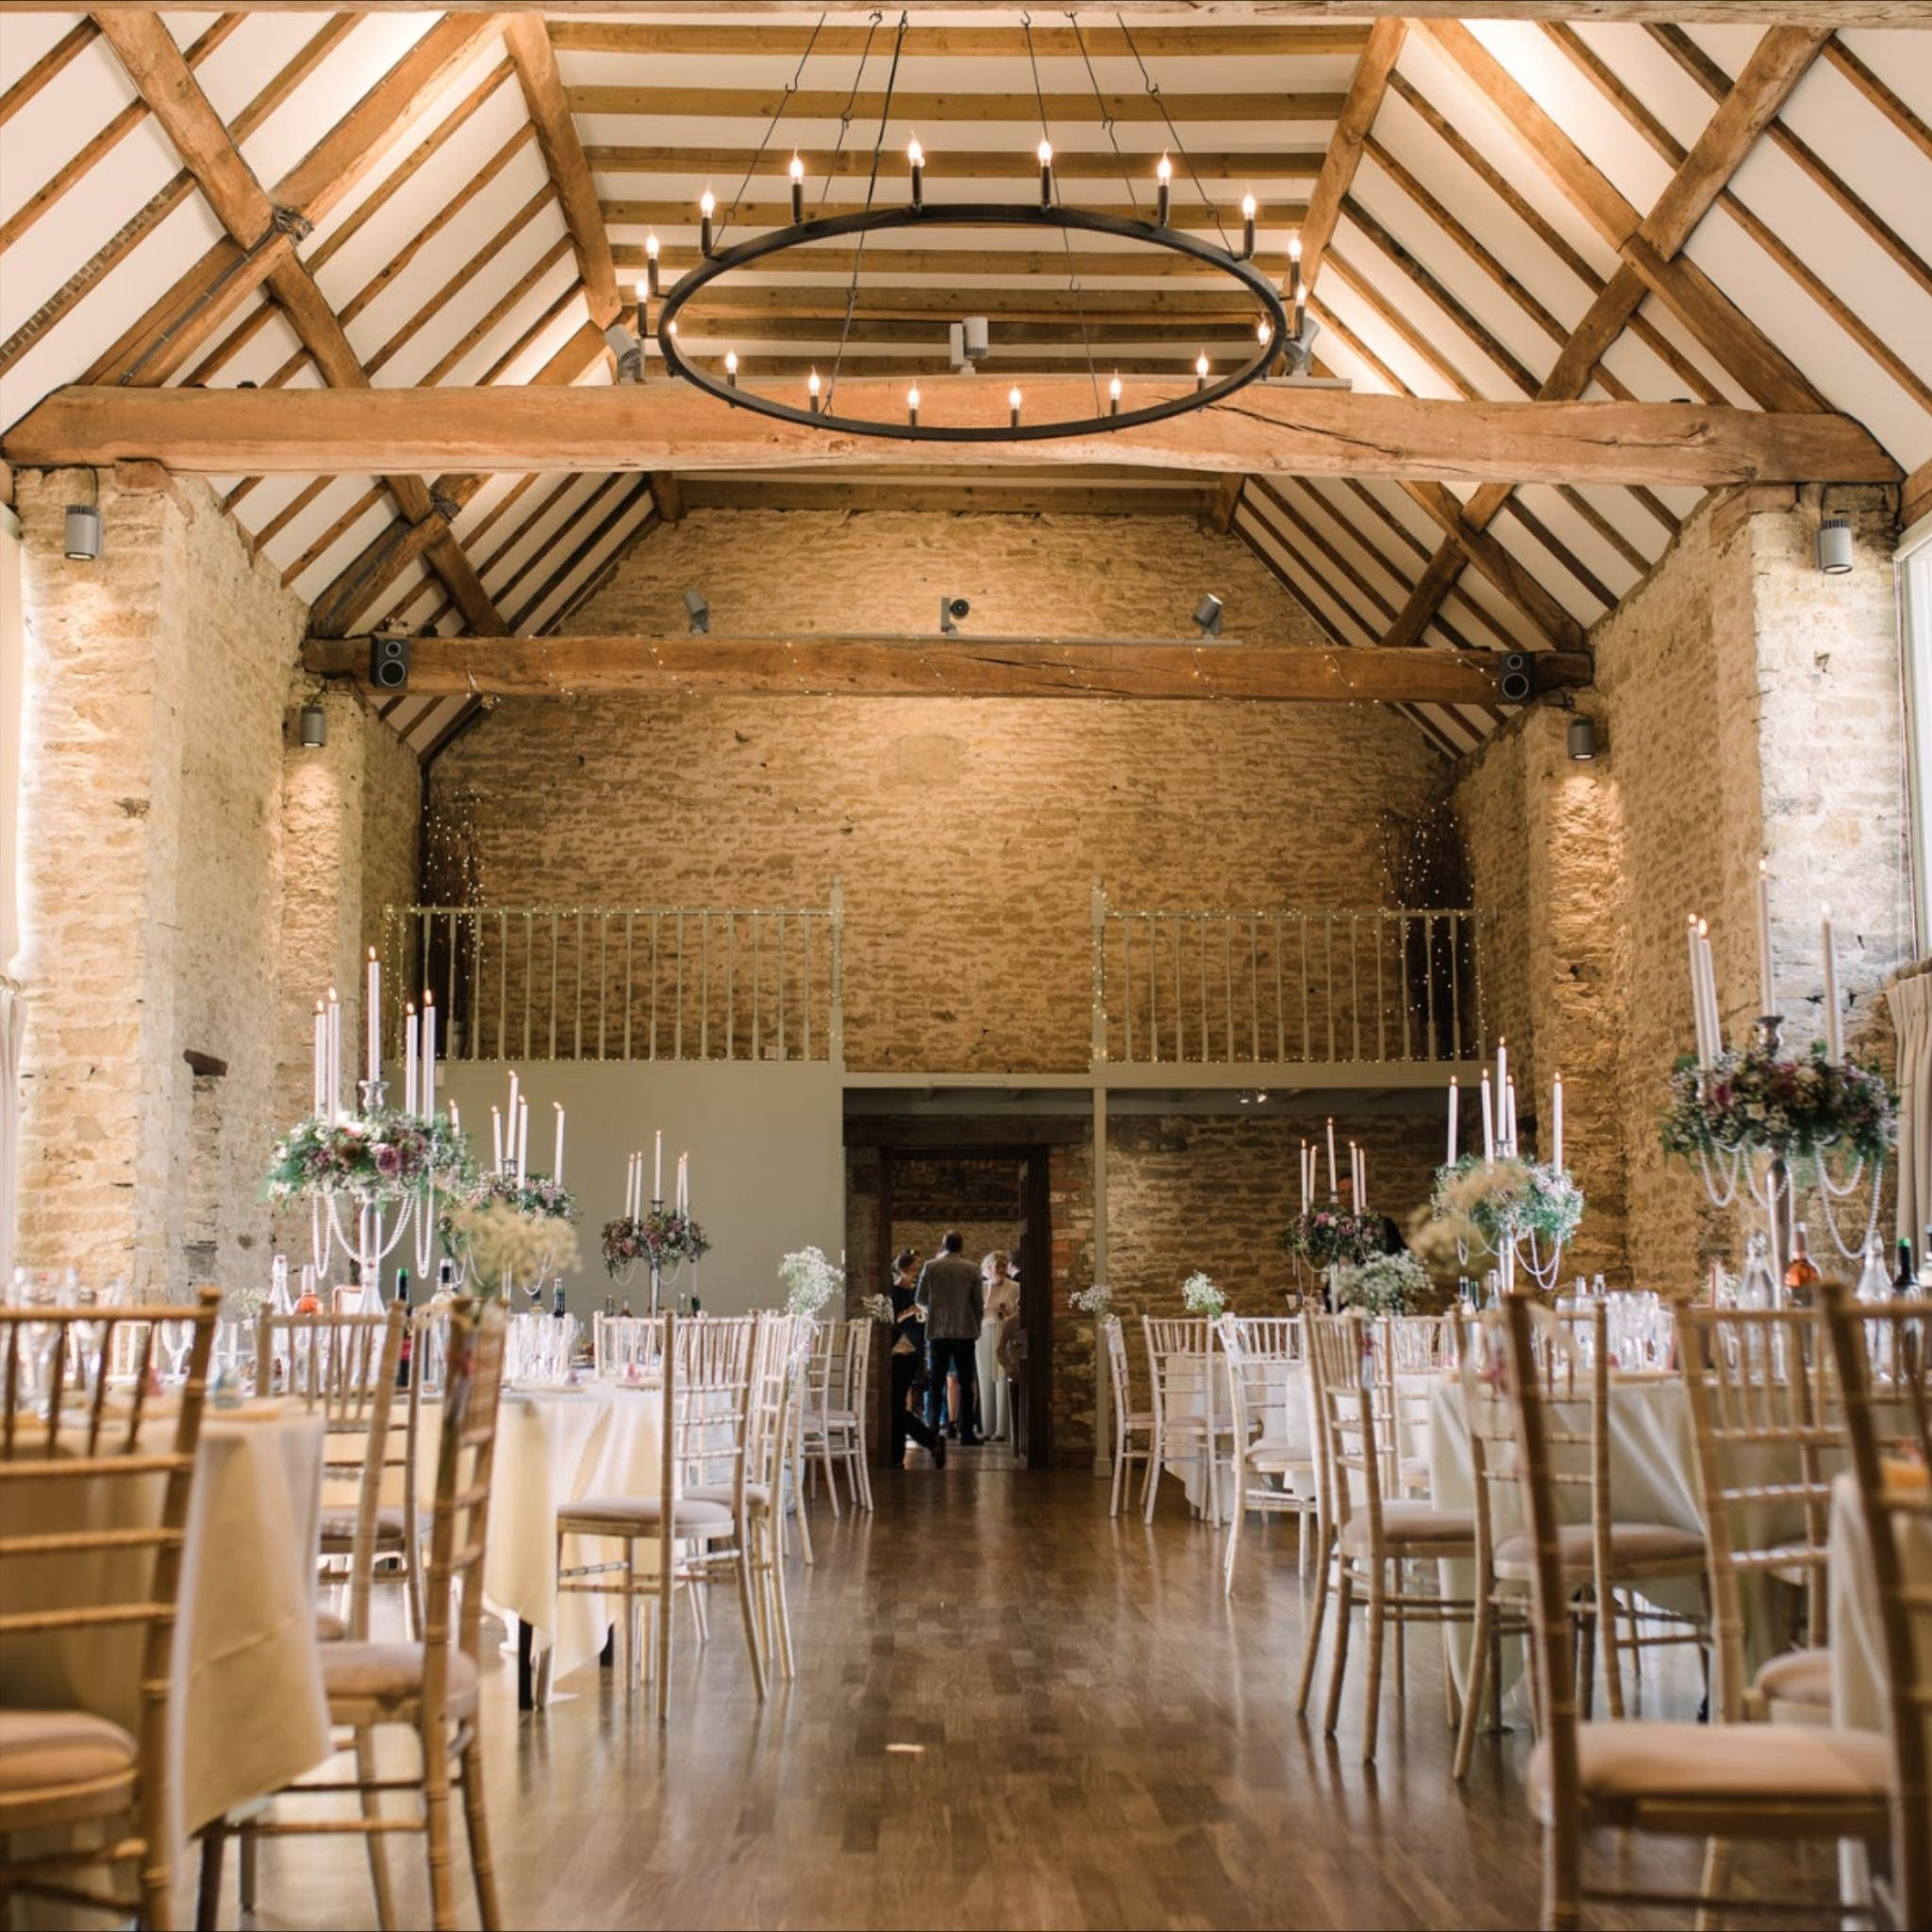 The Great Barn - Oxfordshire, UK in 2020 | Dream wedding ...